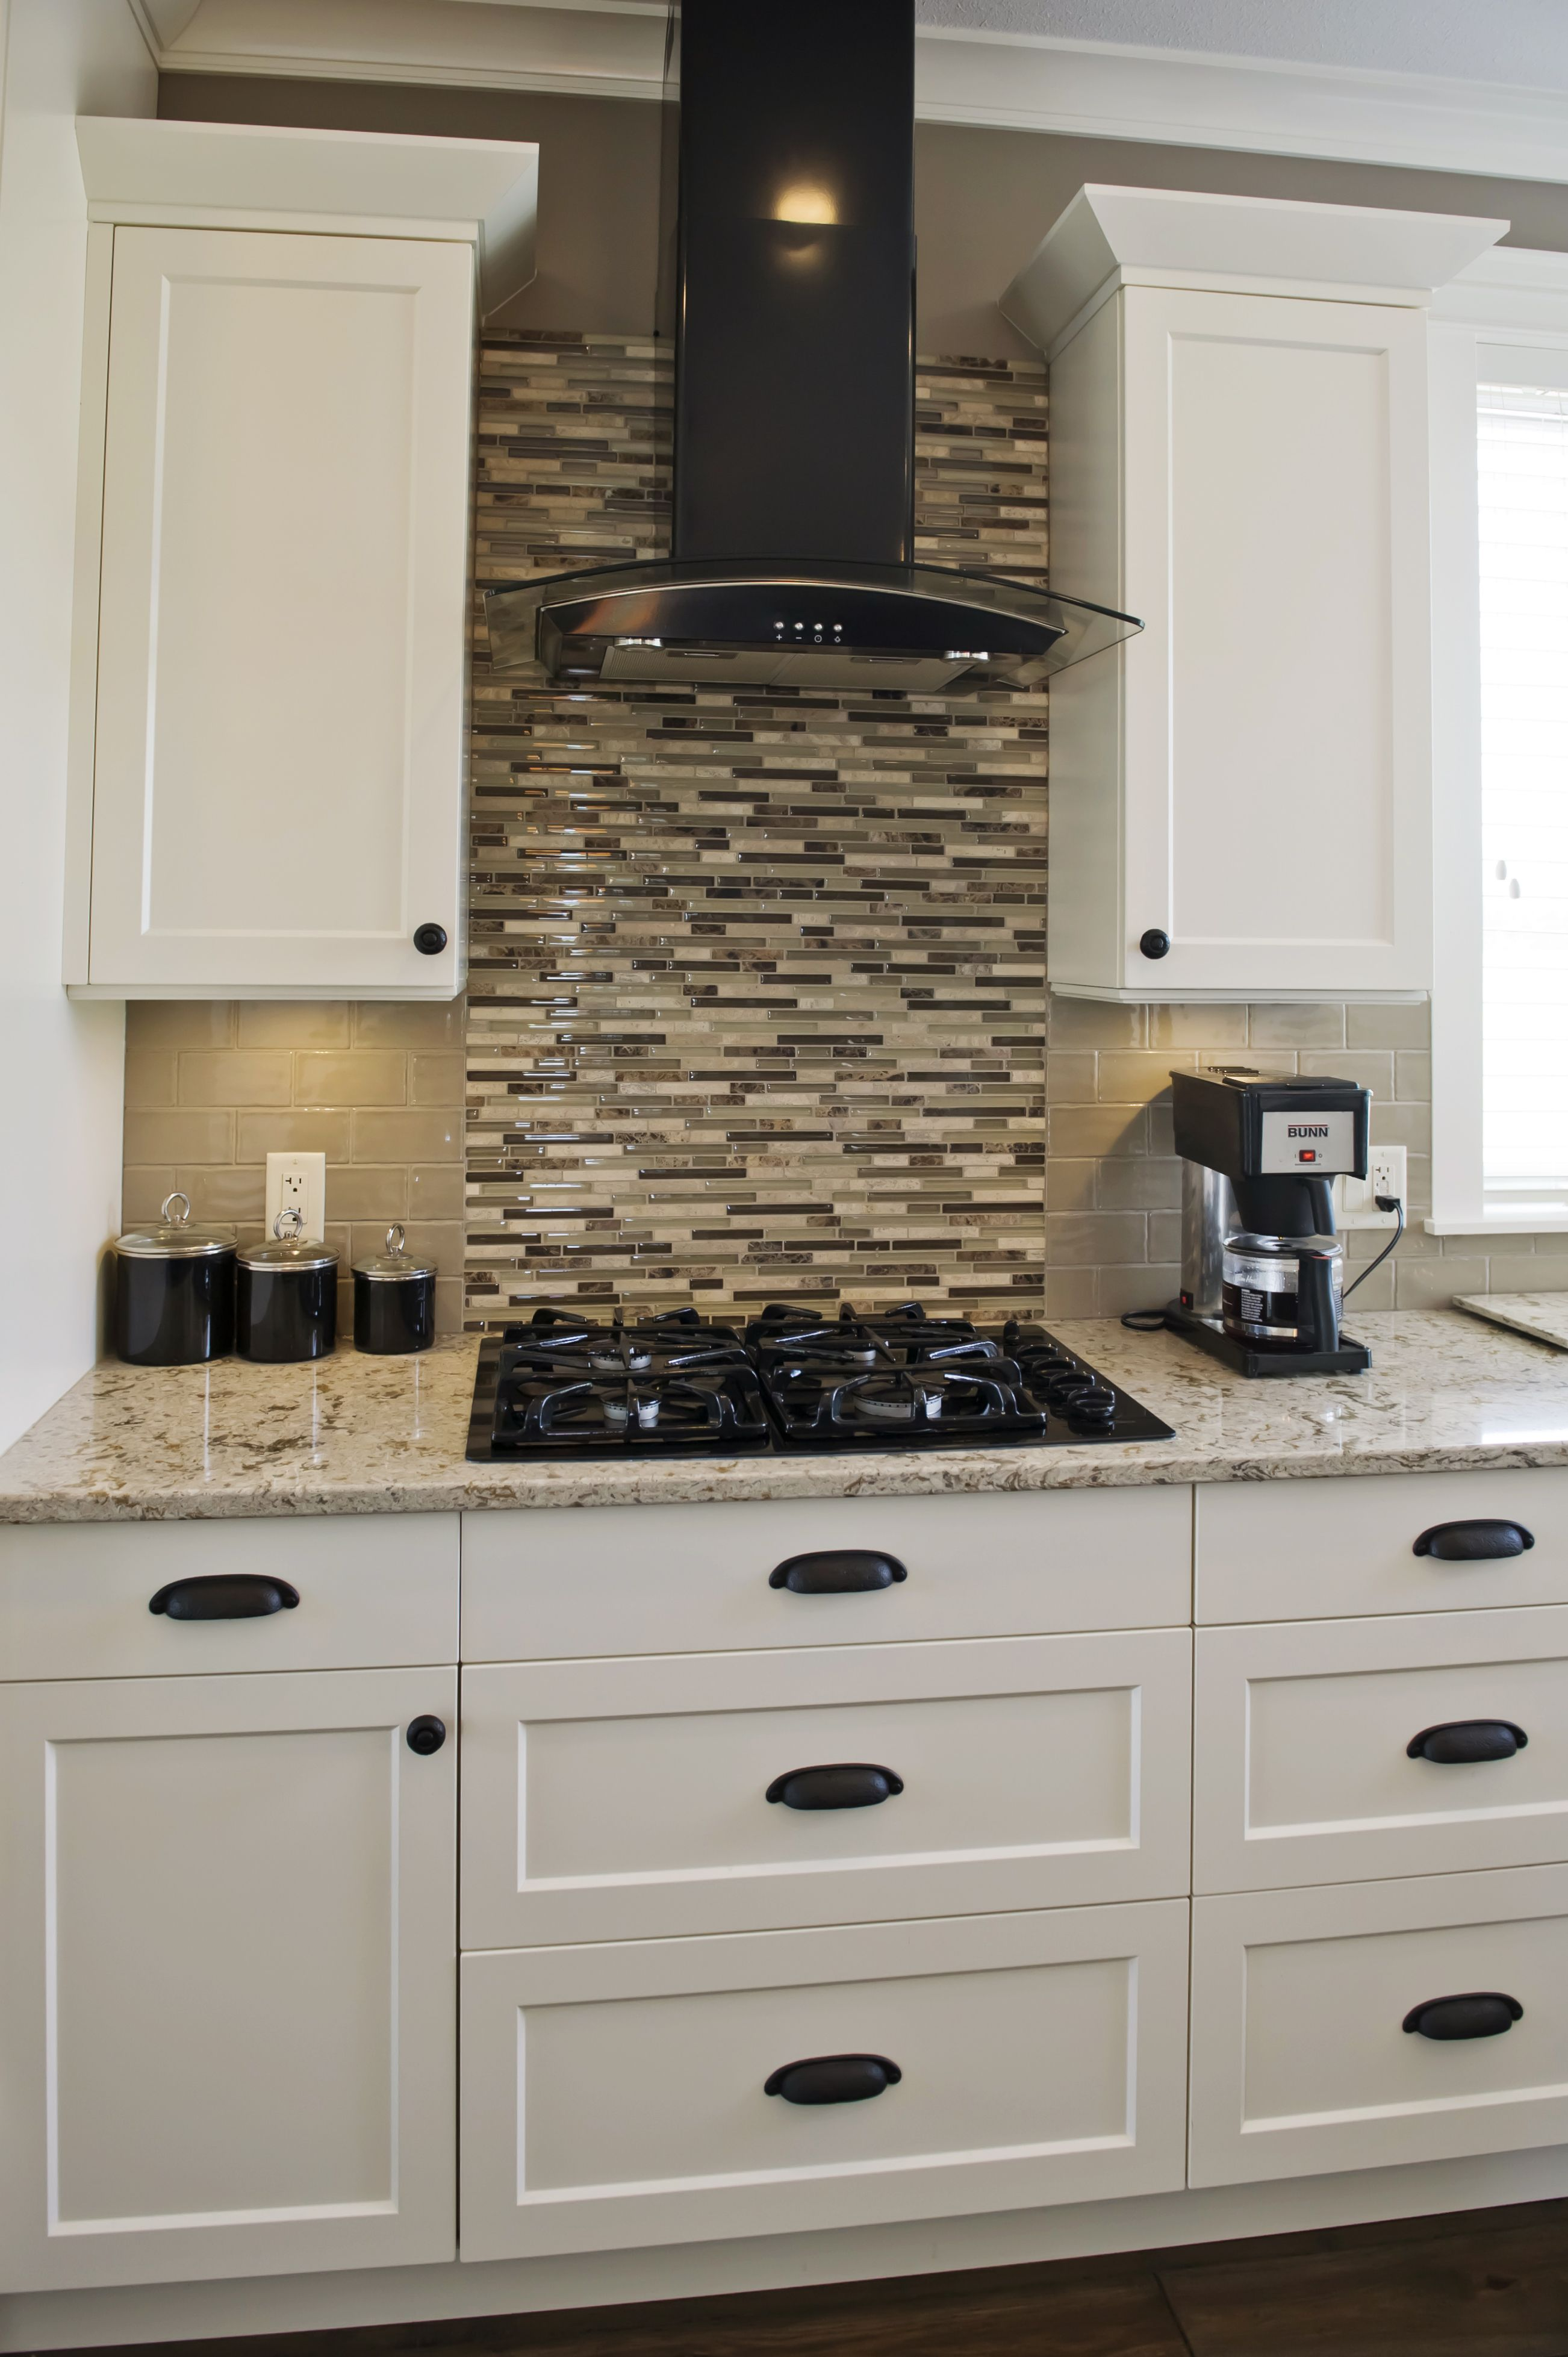 Starline Custom Kitchen Cabinets Are Designed To Turn Your Dream Into  Reality. Our Highly Skilled Team Of Custom Cabinet Manufacturers And  Installers Can ...